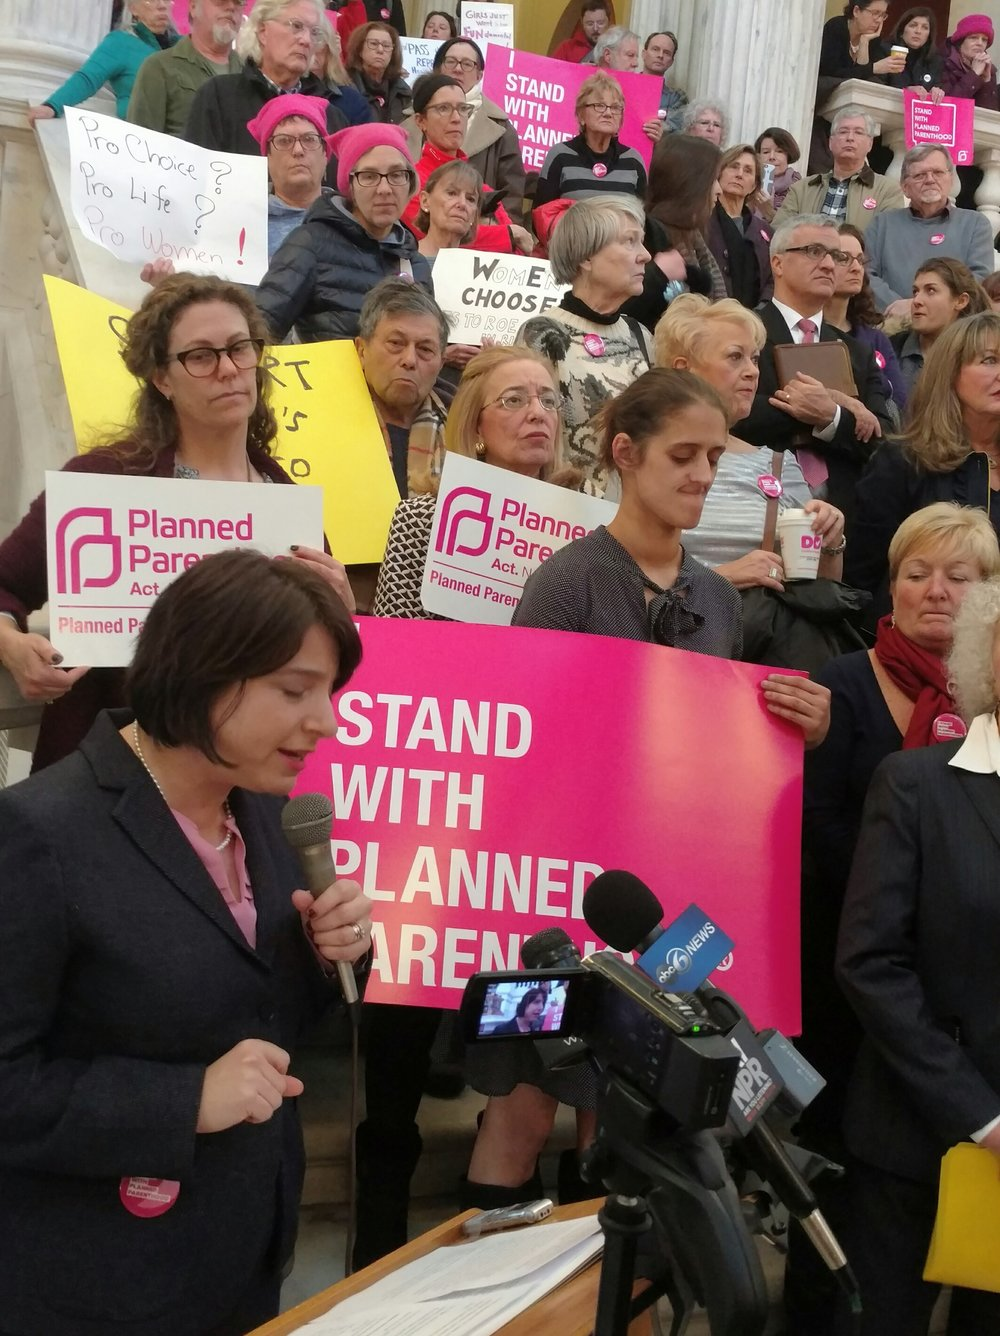 Sen. Gayle Goldin speaks during a rally for a bill to approve abortions in Rhode Island. (Tim Faulkner/ecoRI News)